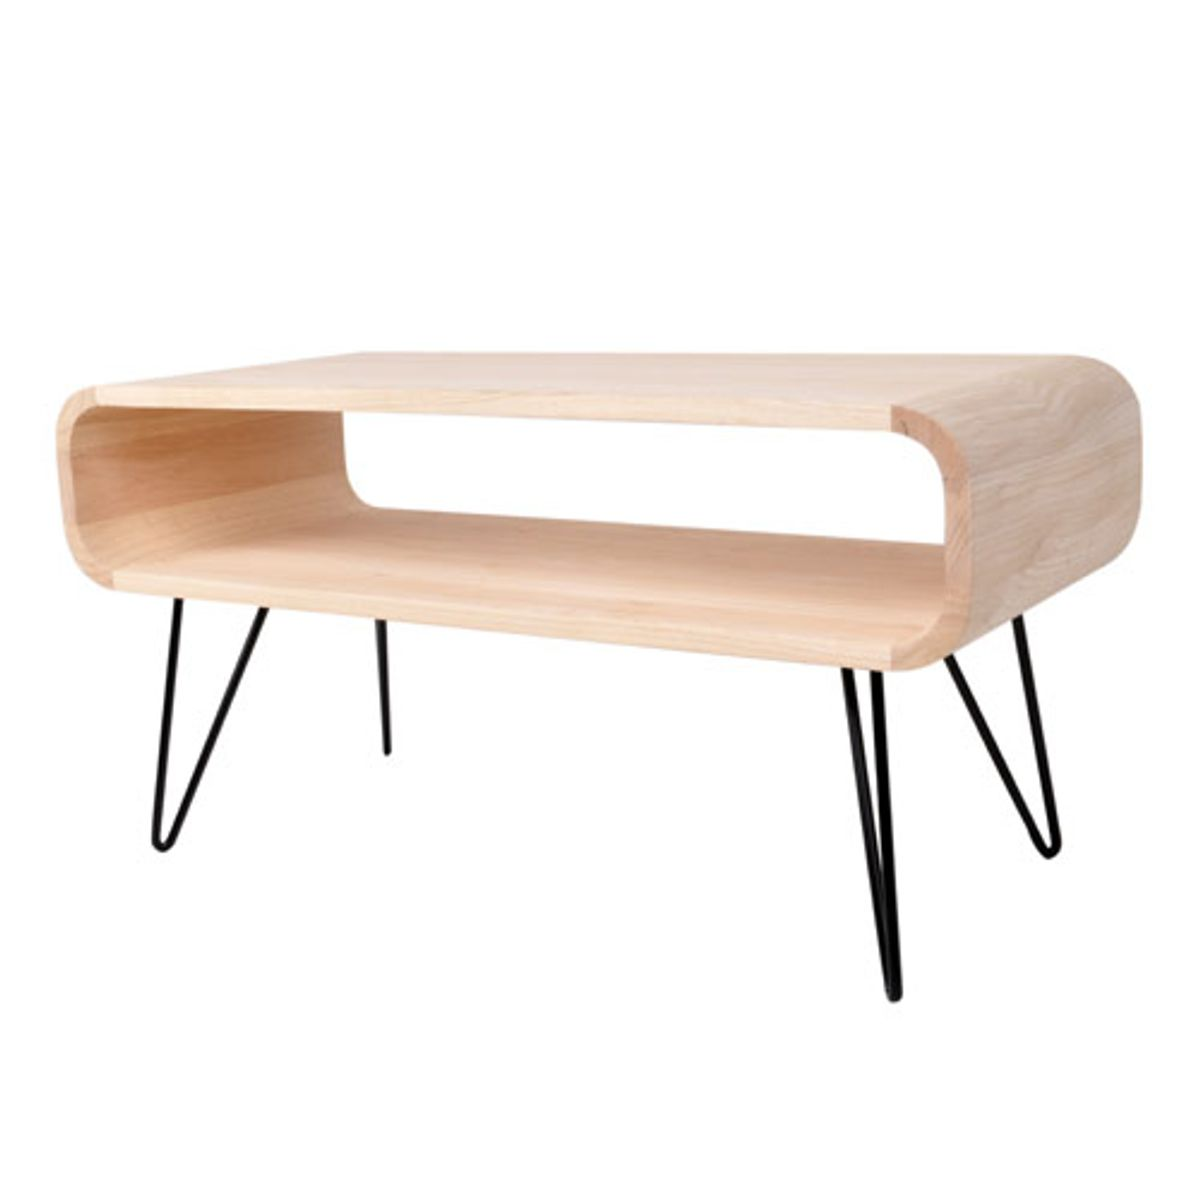 table basse rectangulaire en bois et m tal noir m tro xl boom decoclico. Black Bedroom Furniture Sets. Home Design Ideas